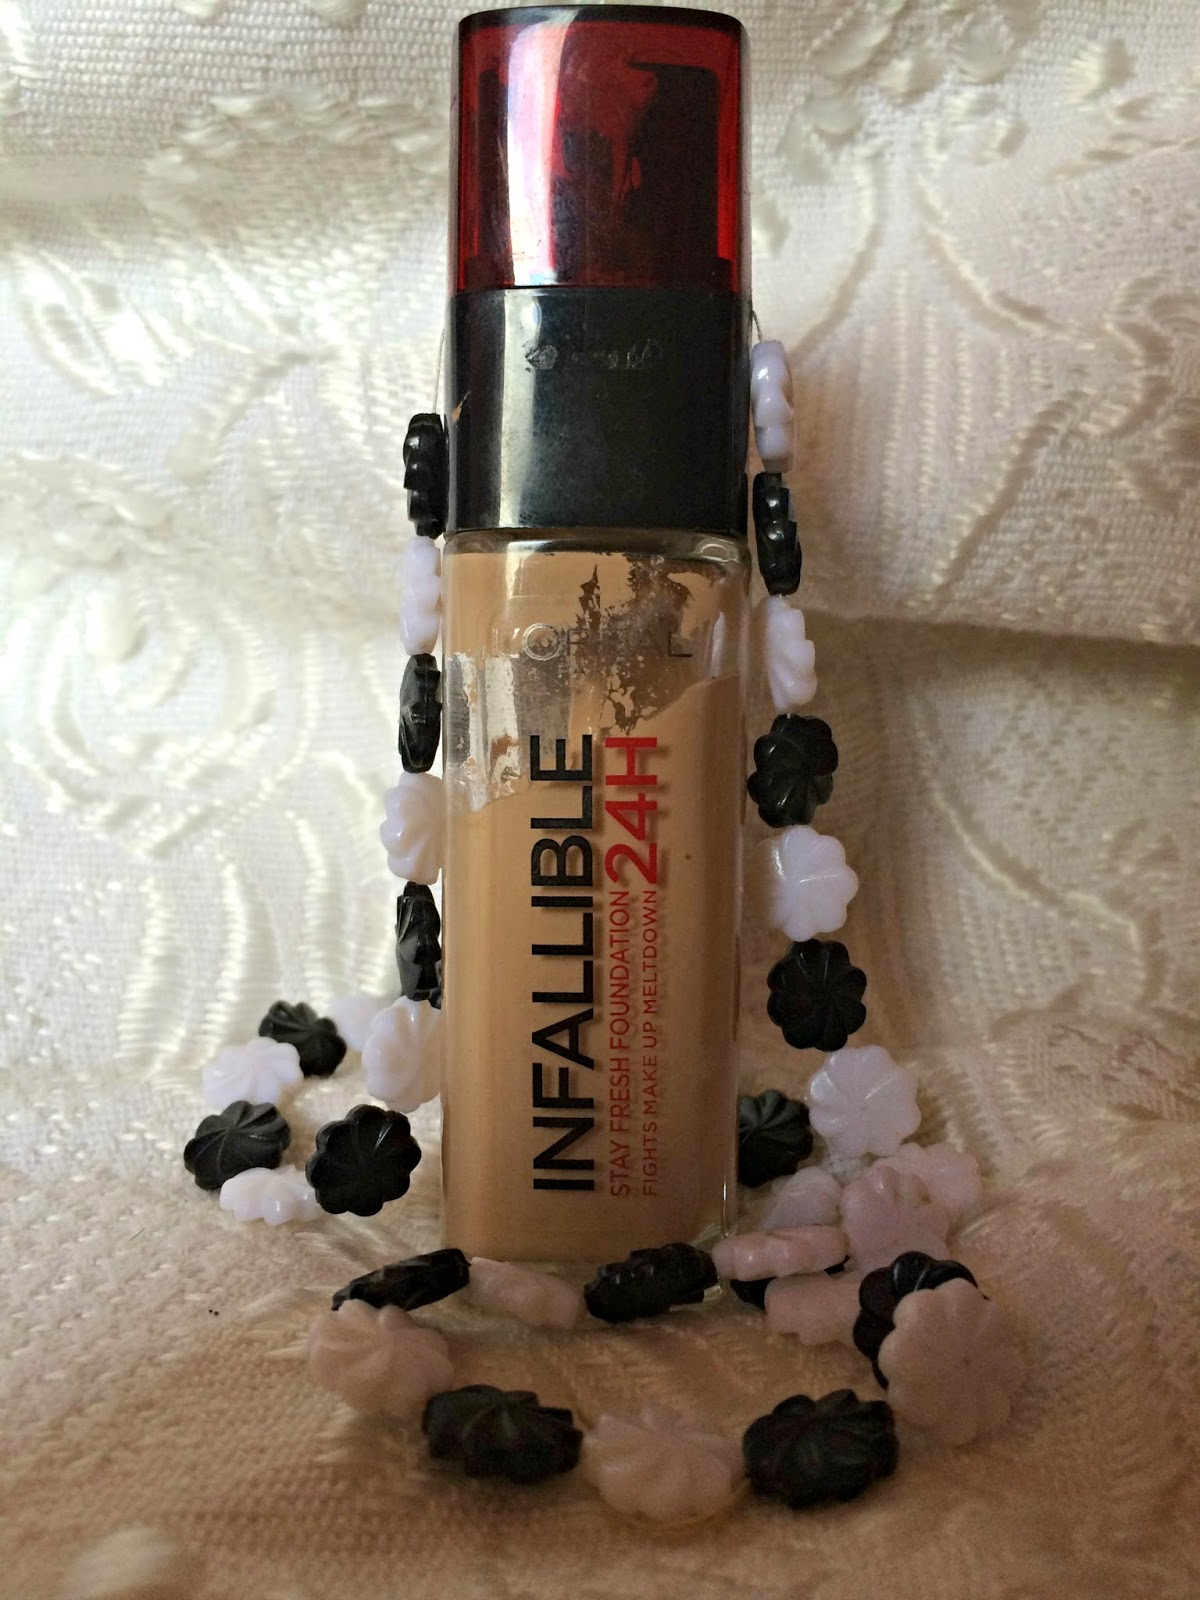 review infallible foundation by loreal bubblybeauty135